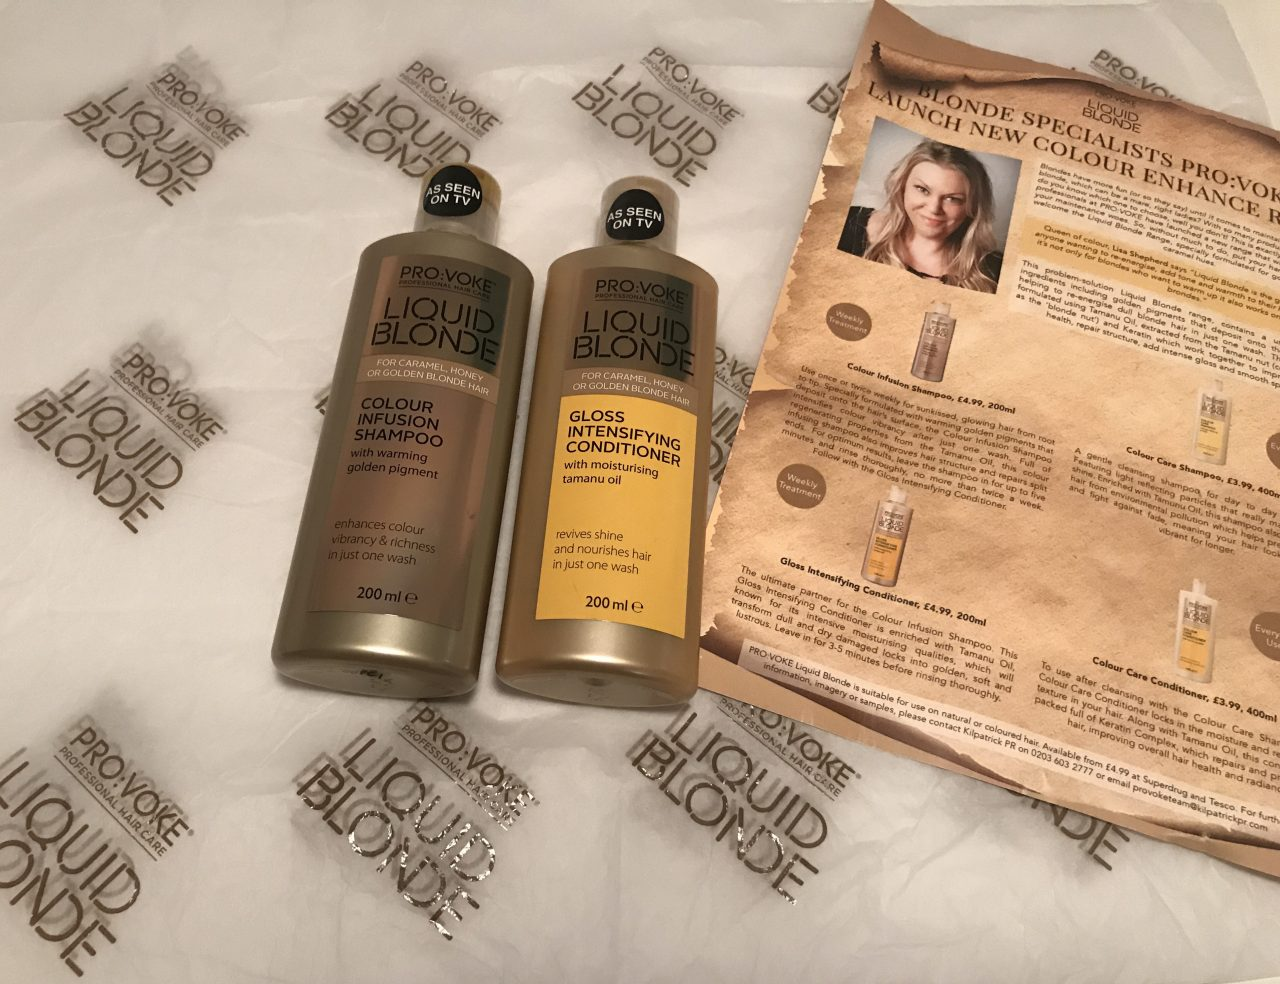 Provoke Haircare Liquid Blonde Shampoo Review